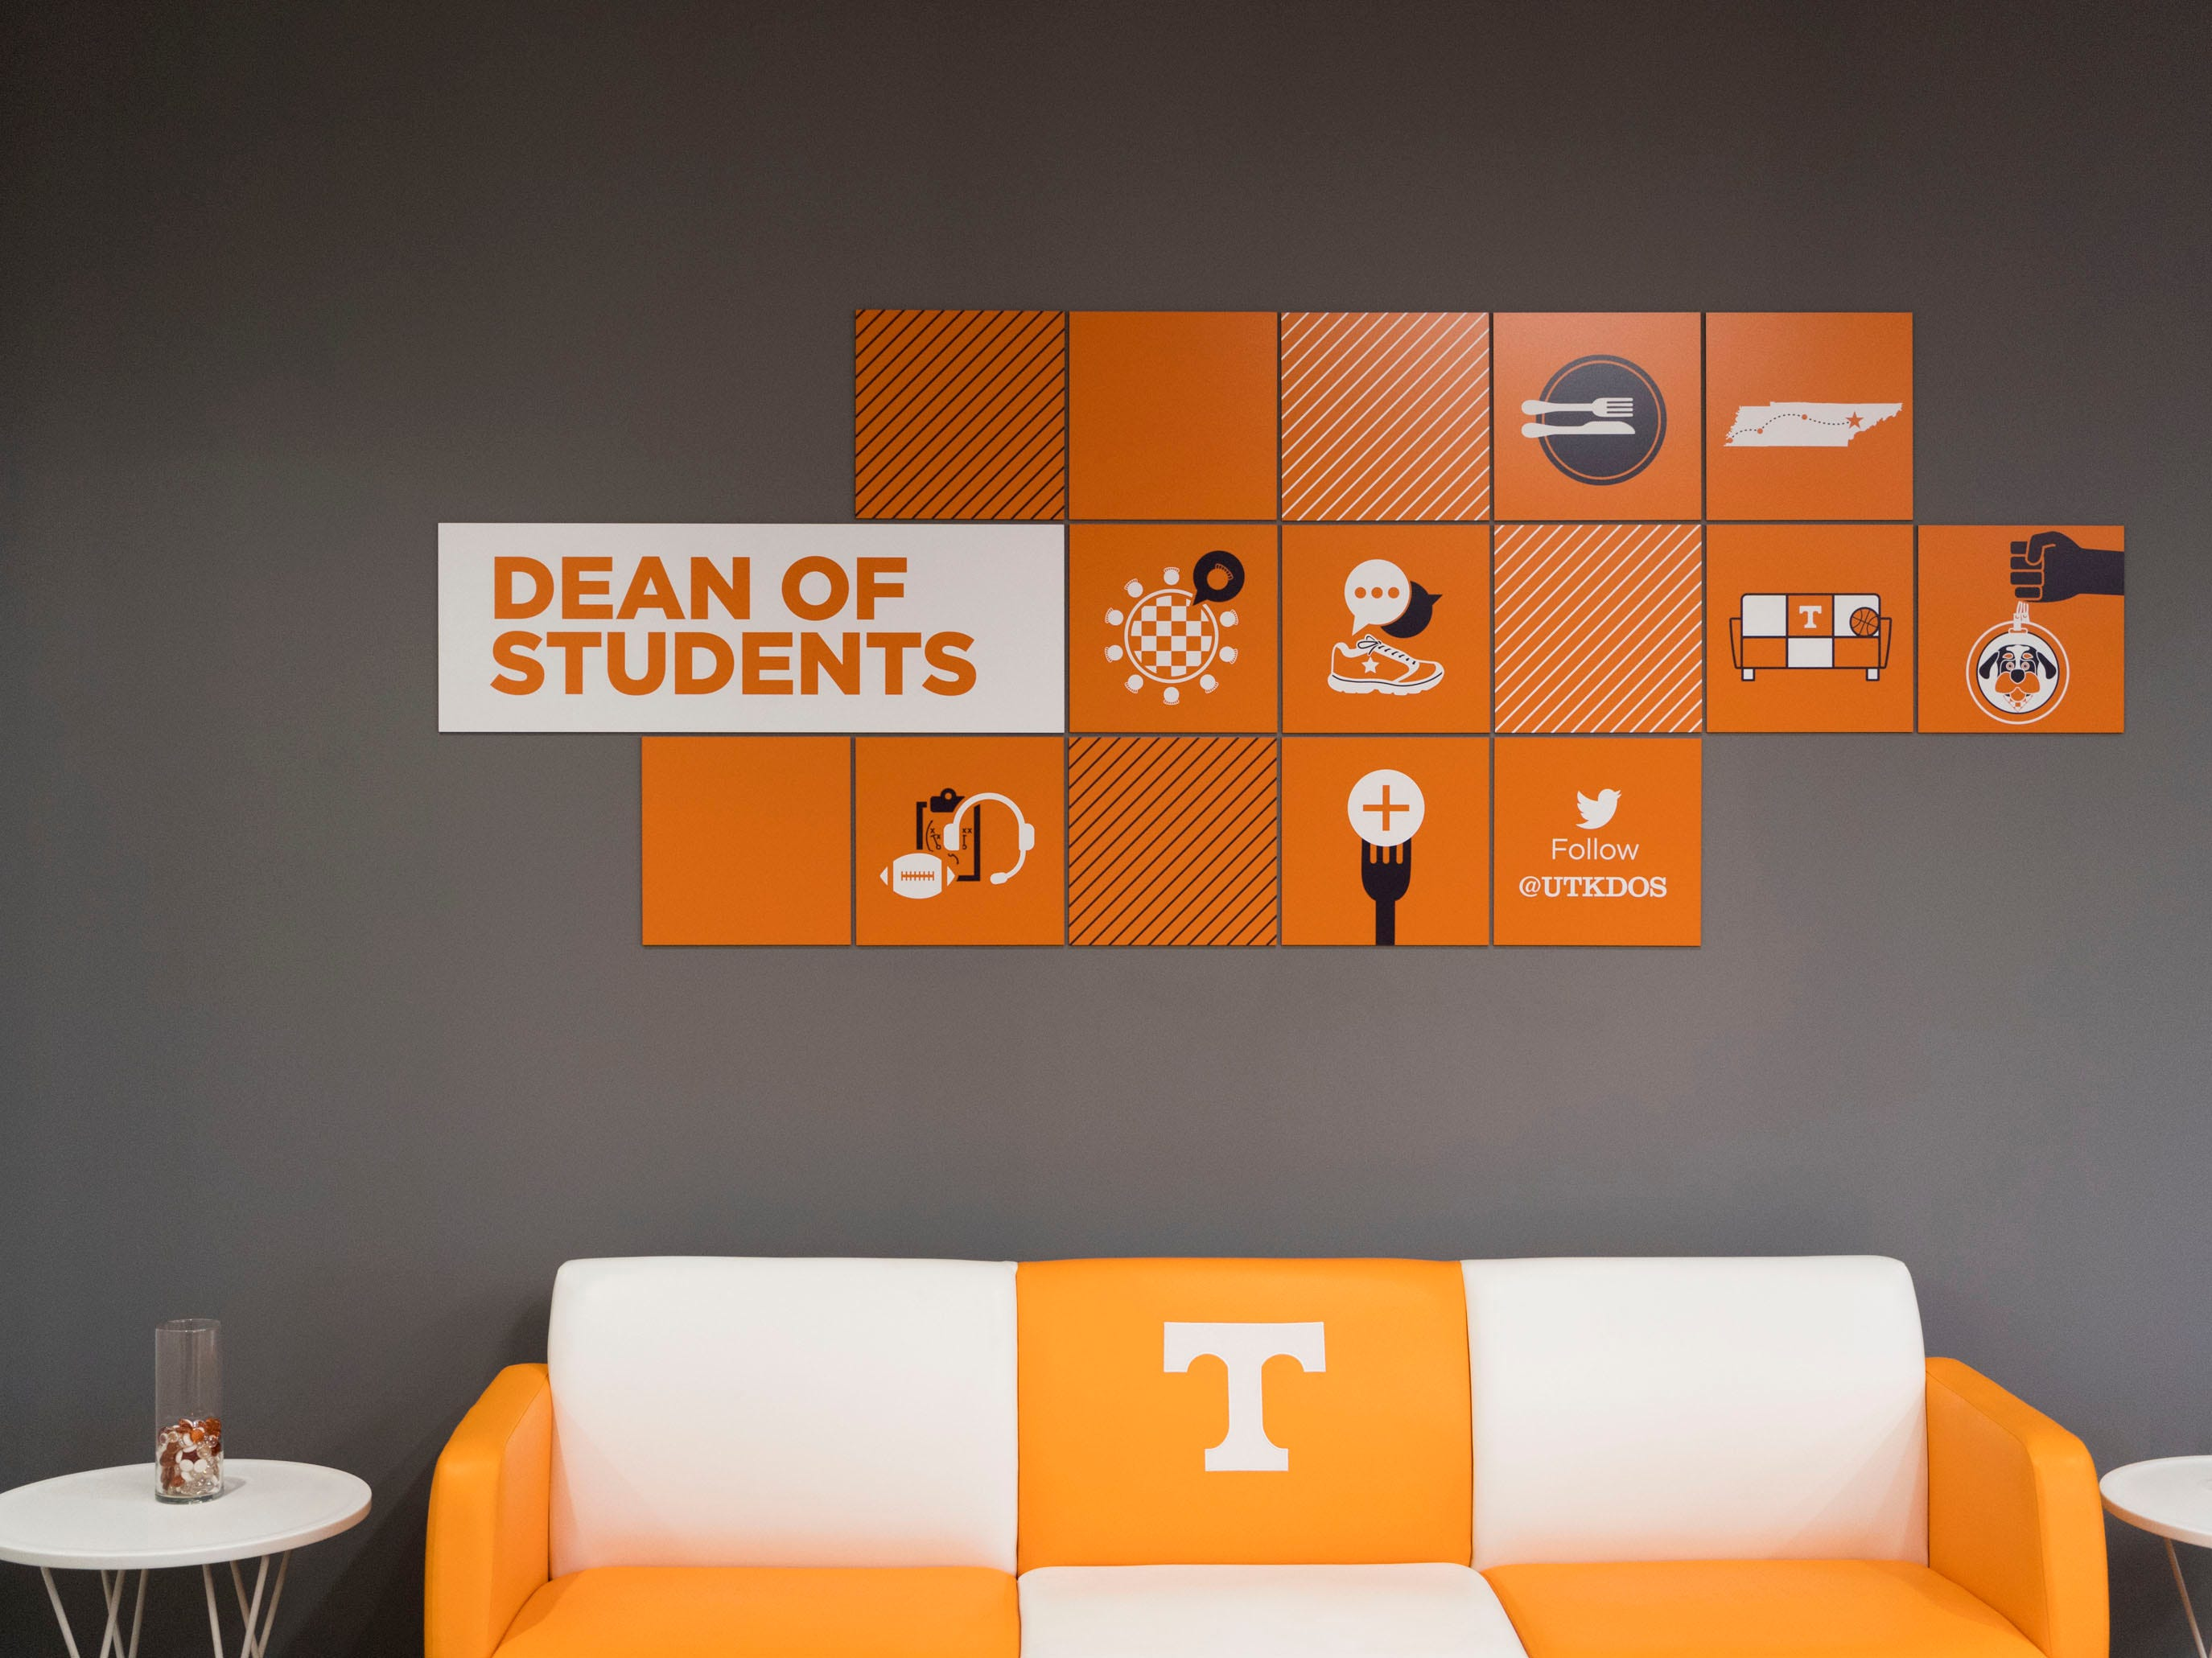 Smokey's Sofa inside the University of Tennessee's Dean of Students office at the Student Union on Monday, January 7, 2019.